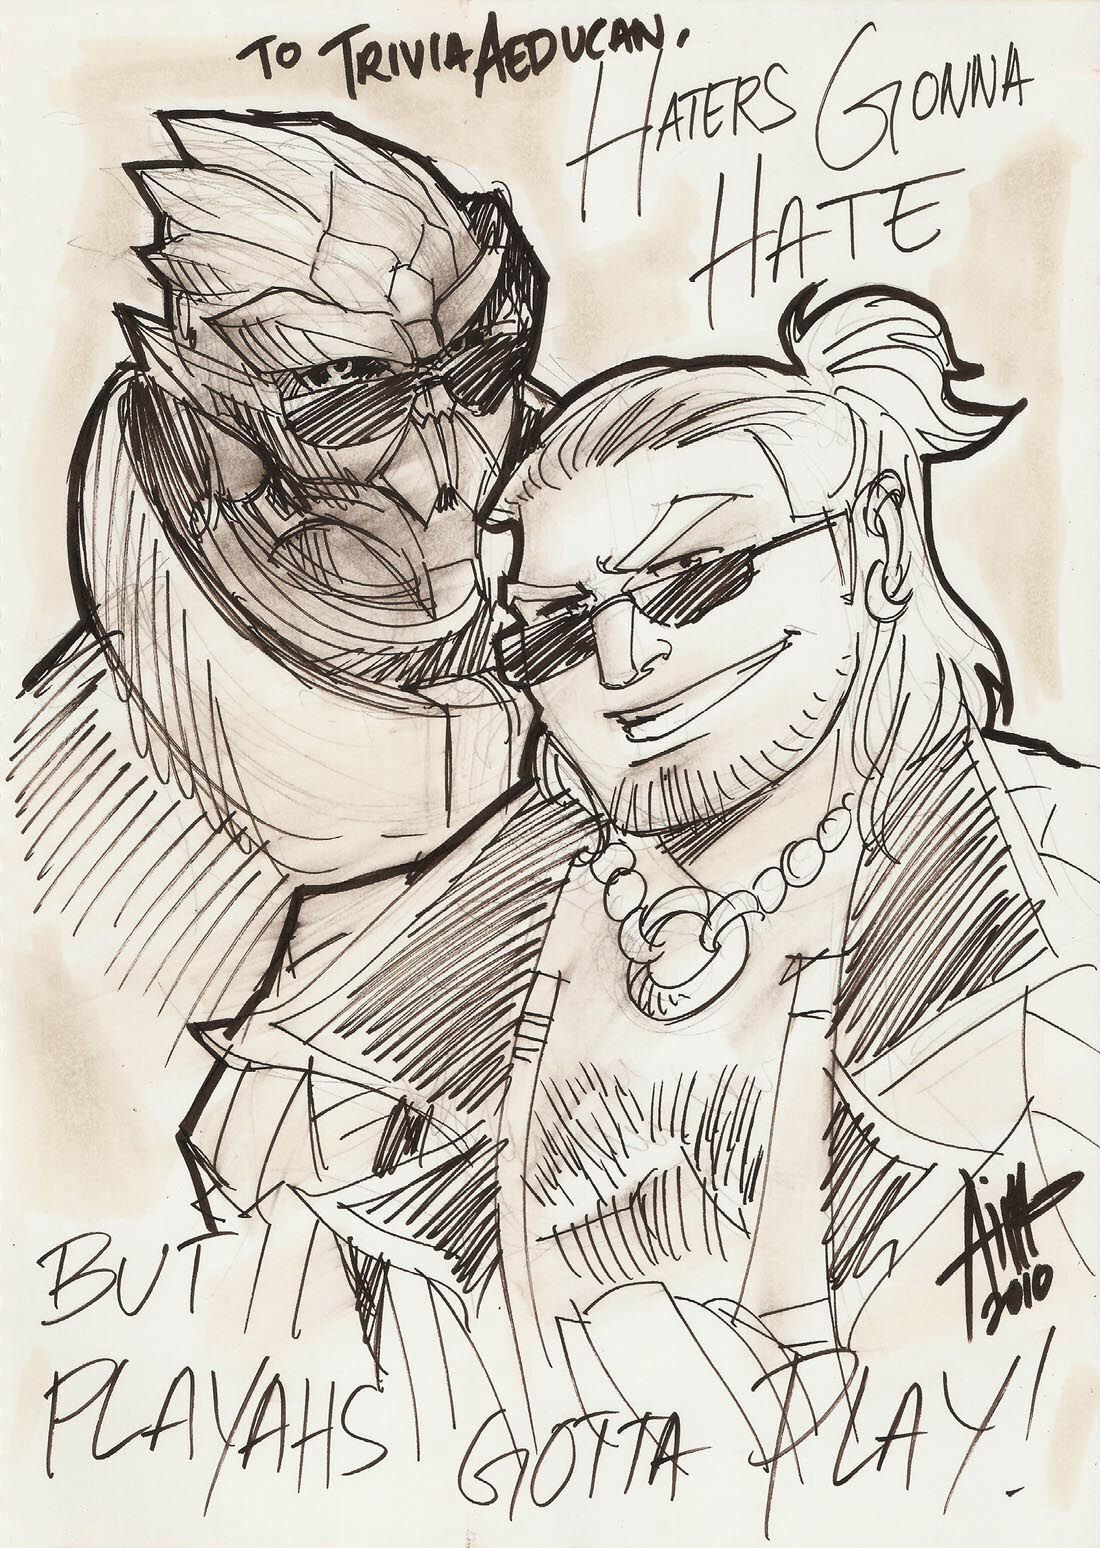 Oh HELL YES!!! Best team-up ever!!!☺️ Image from http://fc05.deviantart.net/fs70/f/2010/353/7/c/7c4101a071767c4d518e54cb1cdb8d09-d356kwk.jpg.